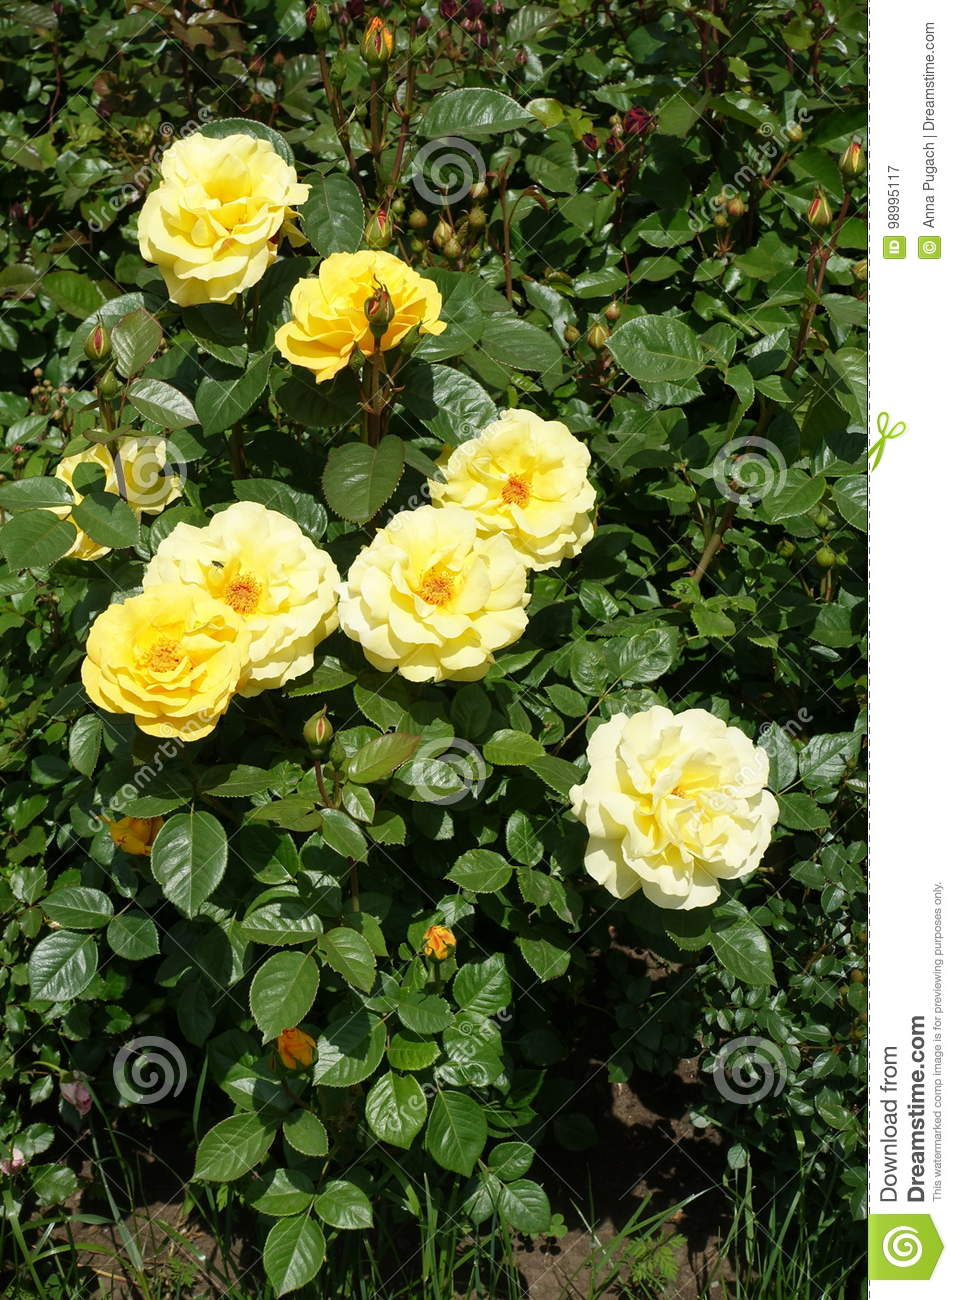 Pale yellow flowers and glossy leaves of rose stock image image of download pale yellow flowers and glossy leaves of rose stock image image of bright mightylinksfo